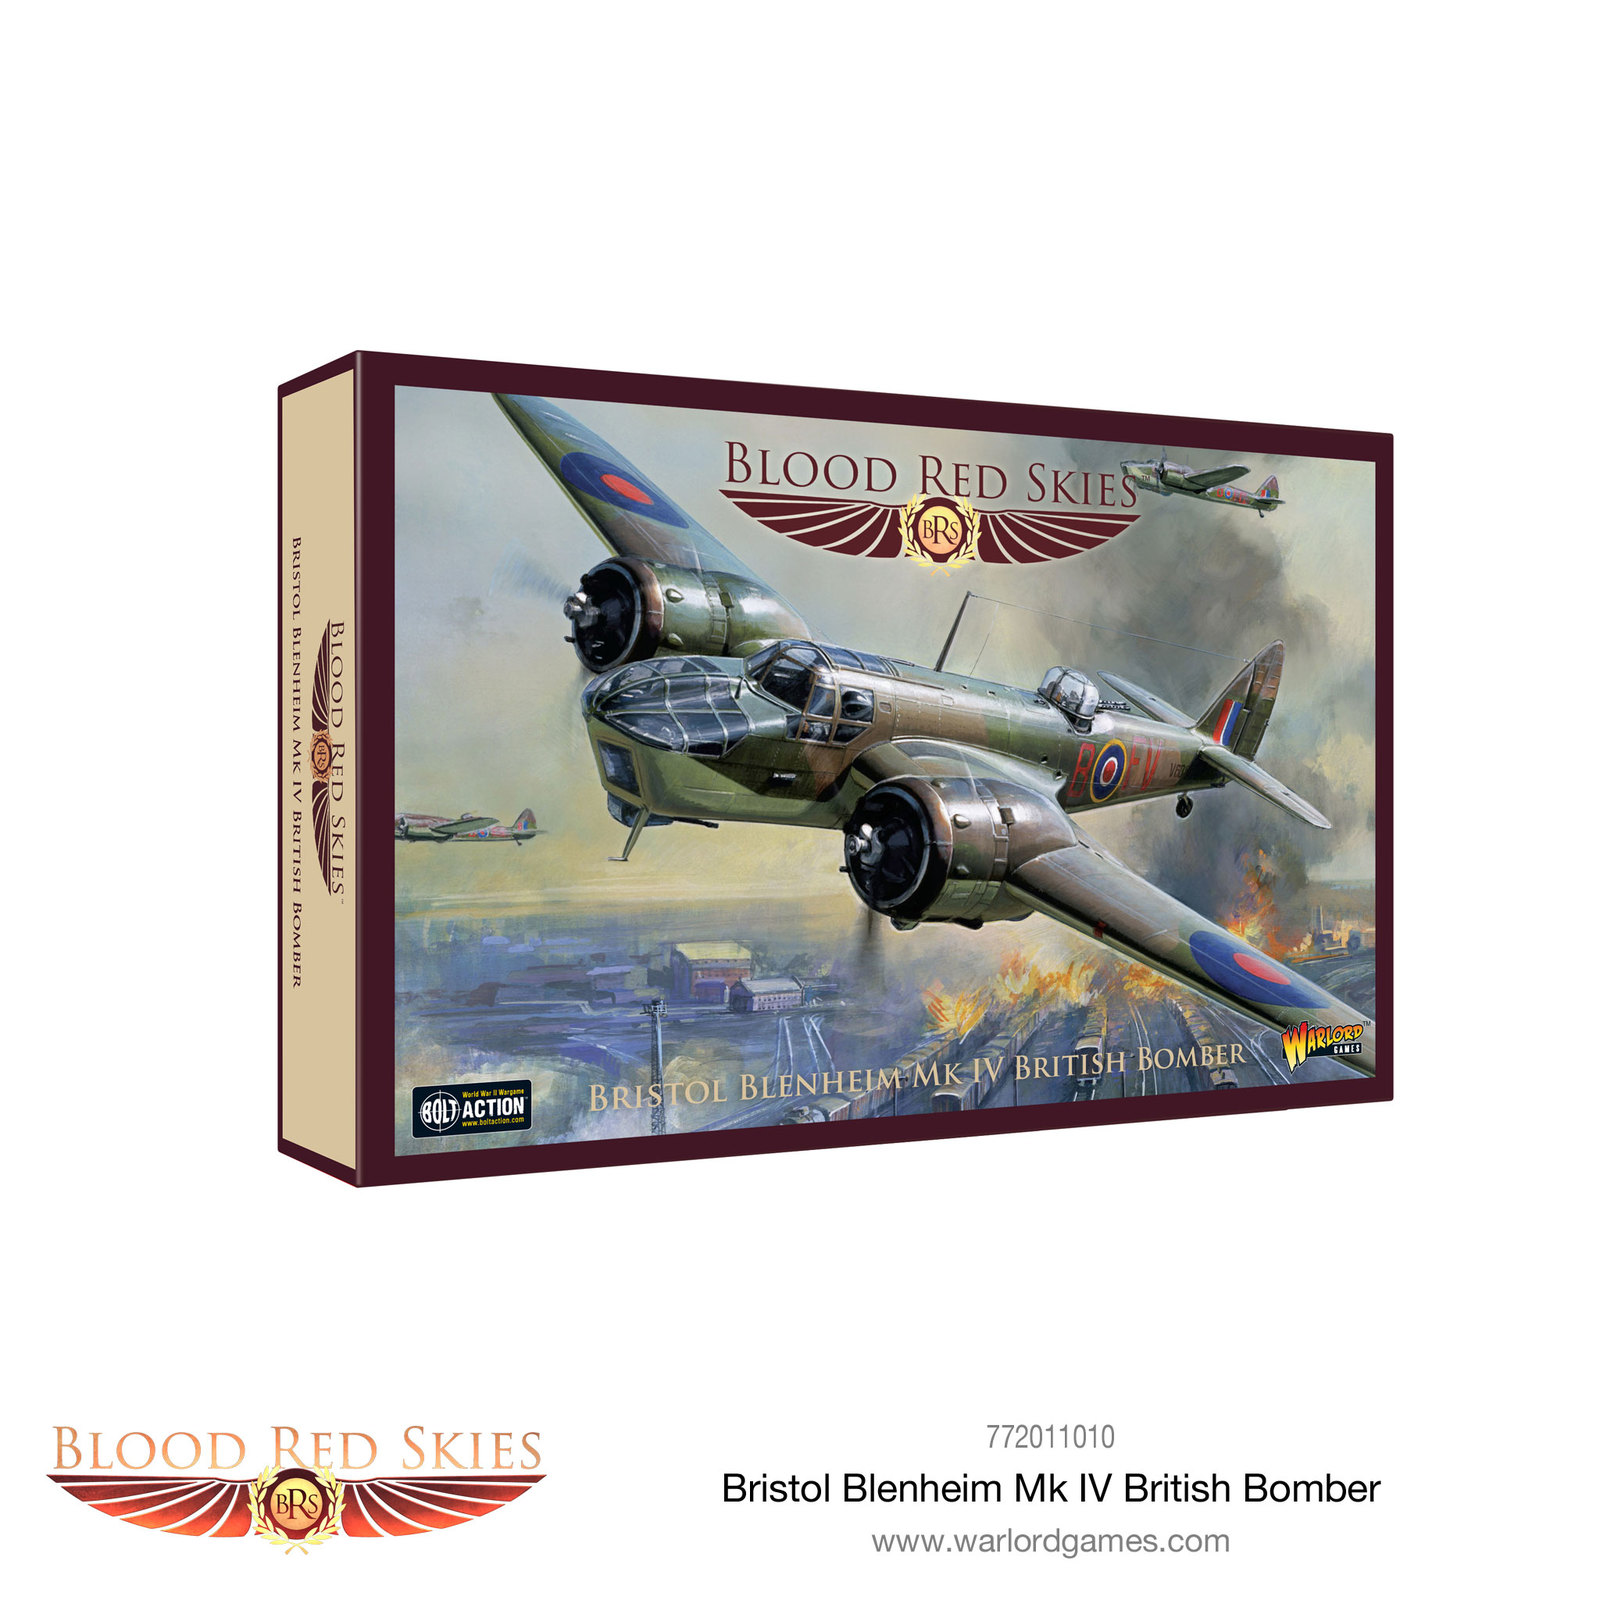 Blood Red Skies: Bristol Blenheim Mk IV British Bomber image